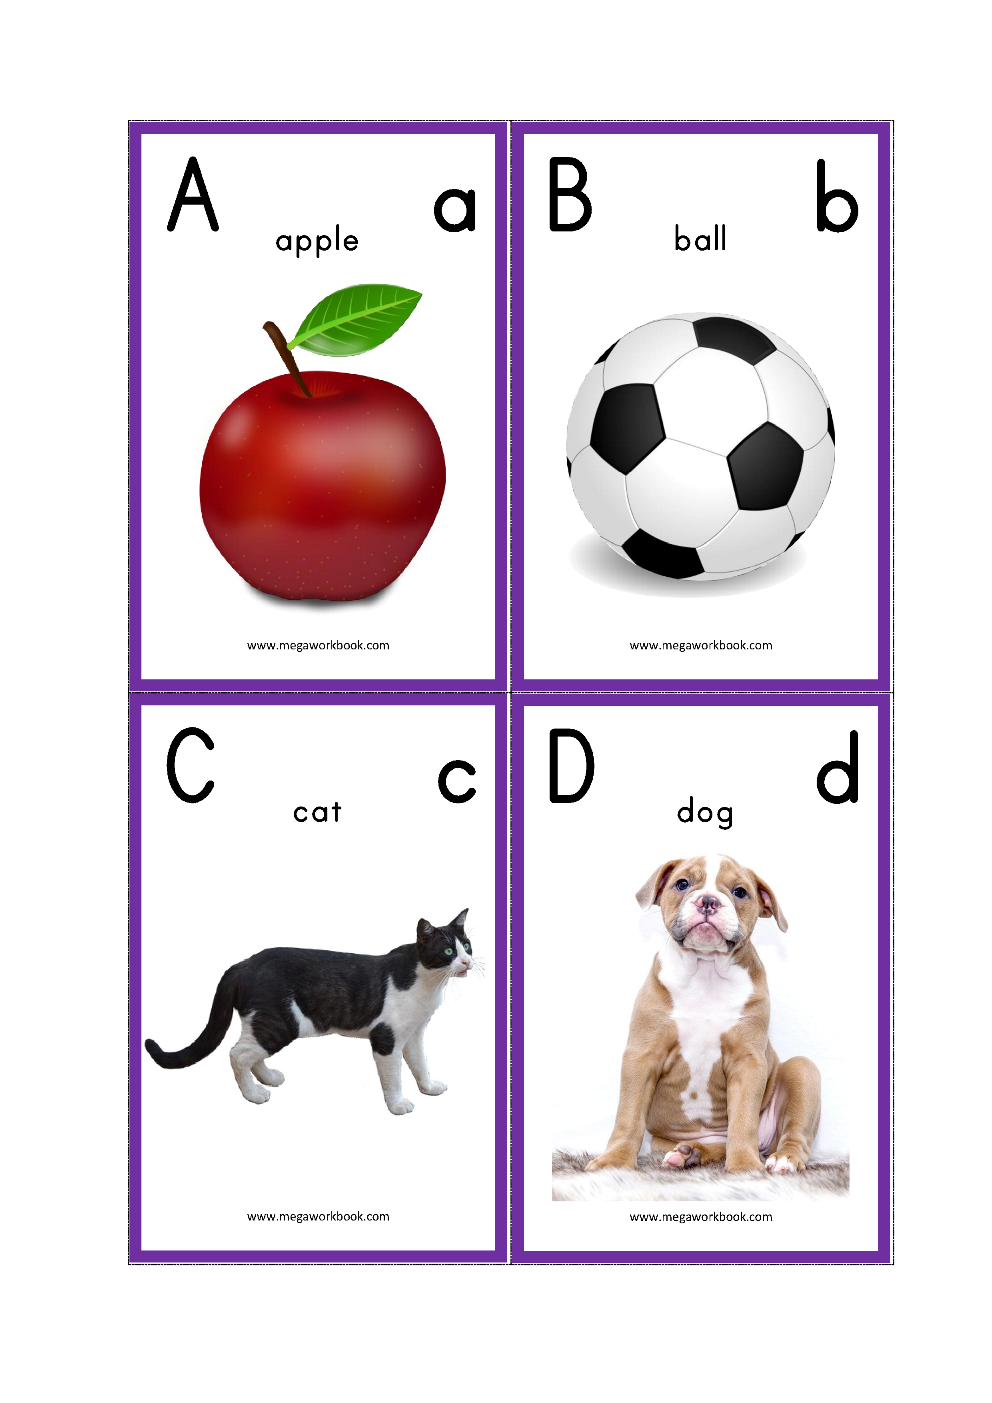 graphic regarding Abc Flash Cards Printable named Alphabet Flash Playing cards - ABC Flash Playing cards - Letter Flashcards